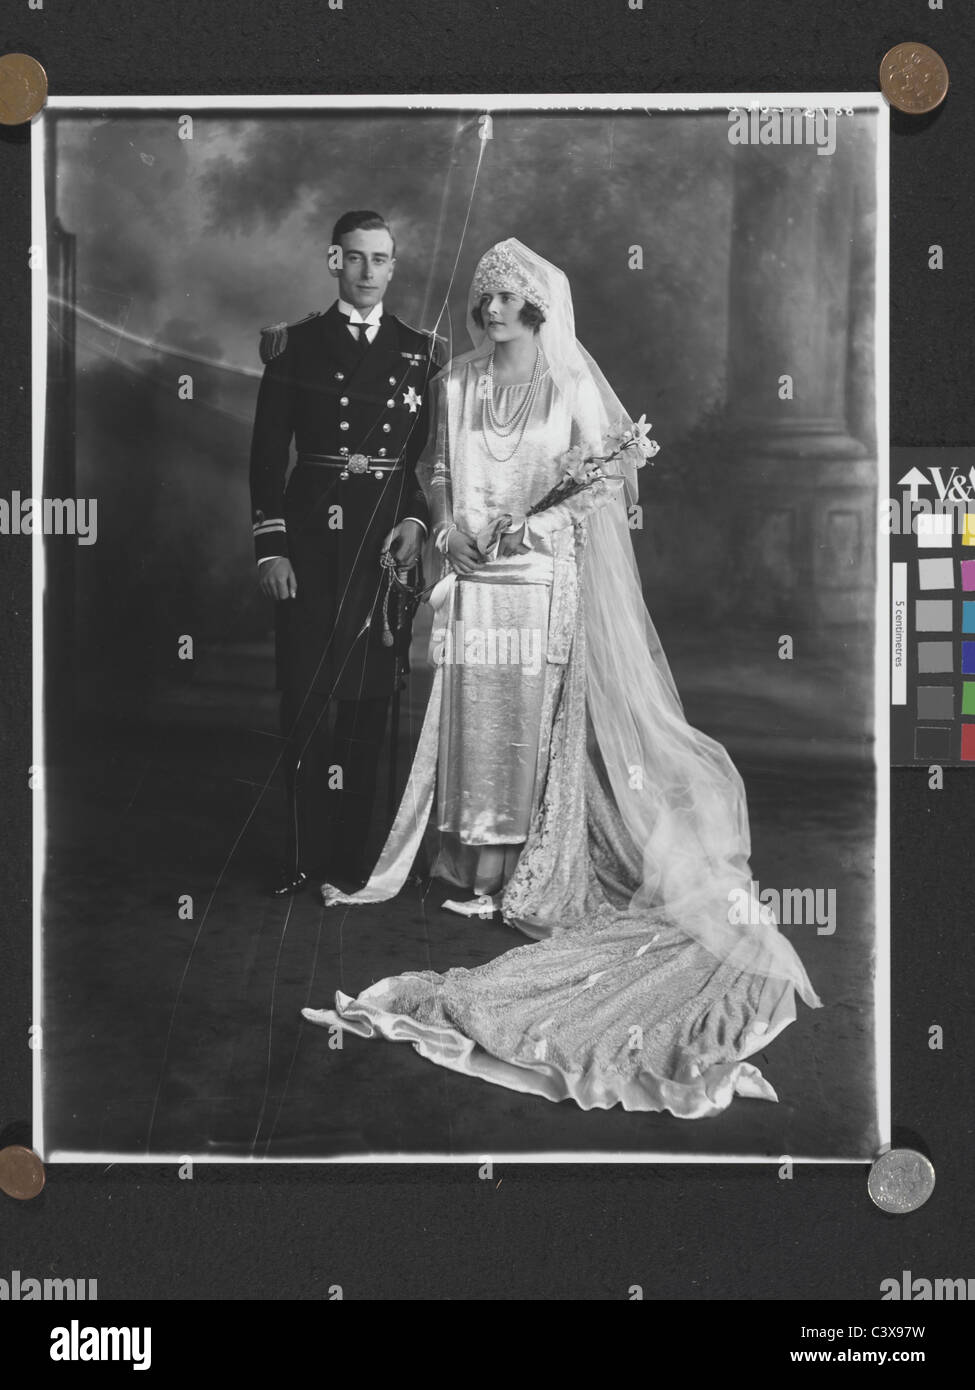 Lord and Lady Louis Mountbatten, photo Lafayette Portrait Studios. London, England, 1922 - Stock Image